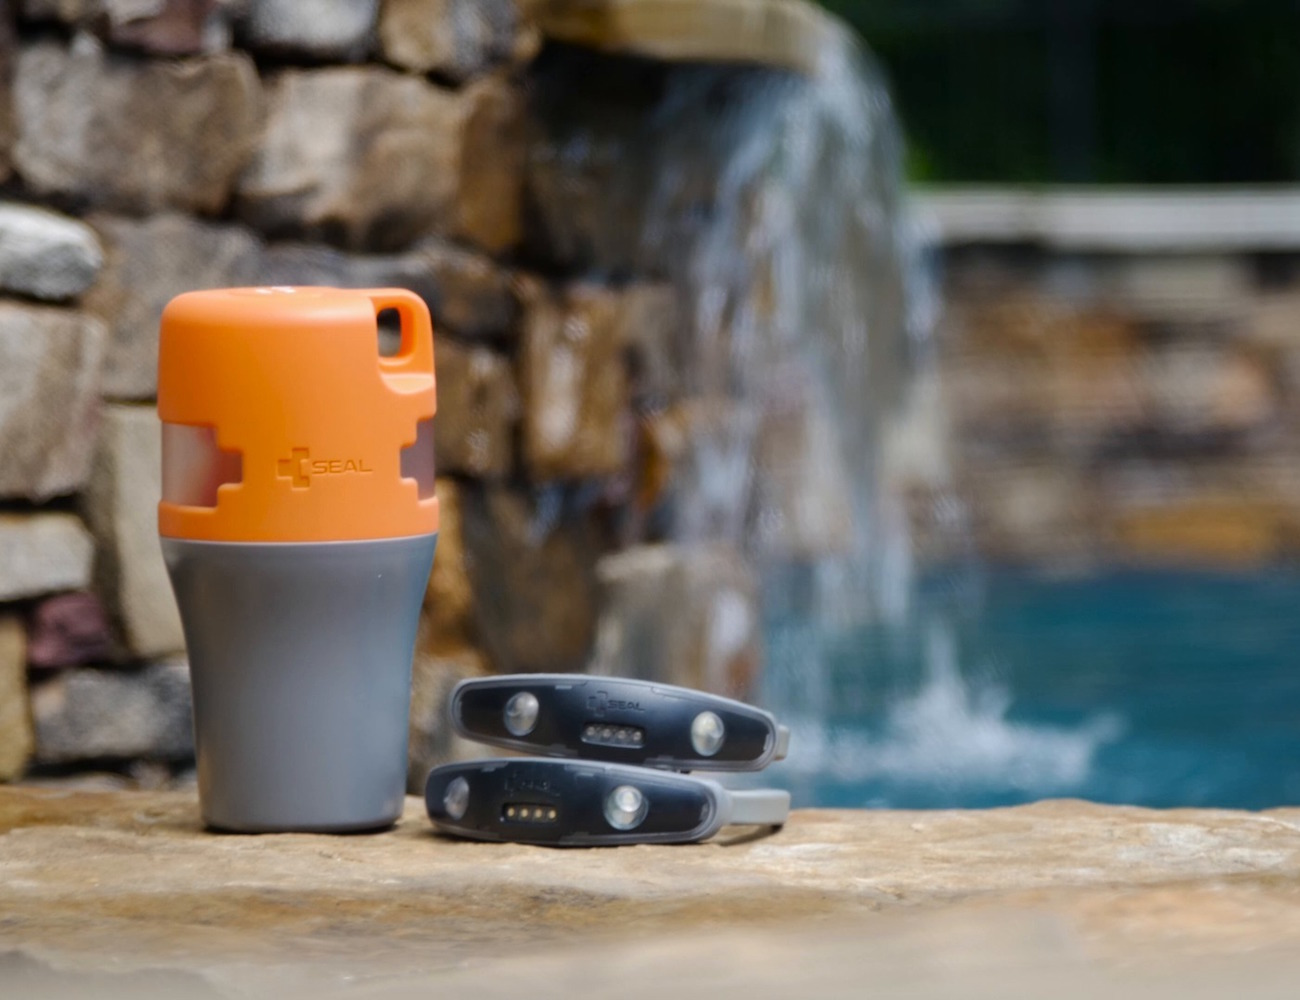 SwimSafe Swim Monitor System by SEAL